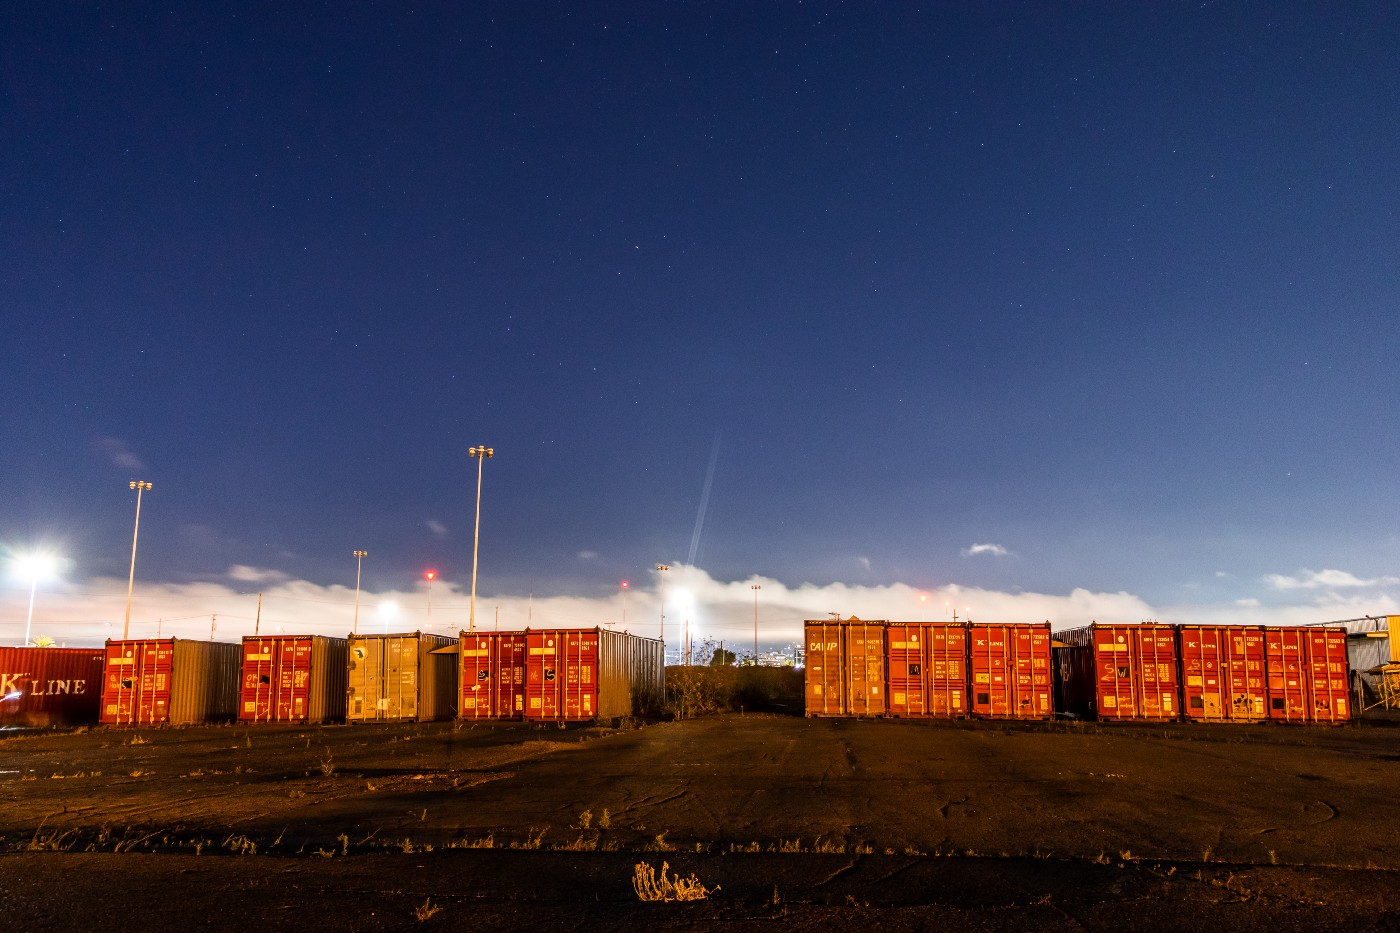 A set of containers with a skyline in the background.